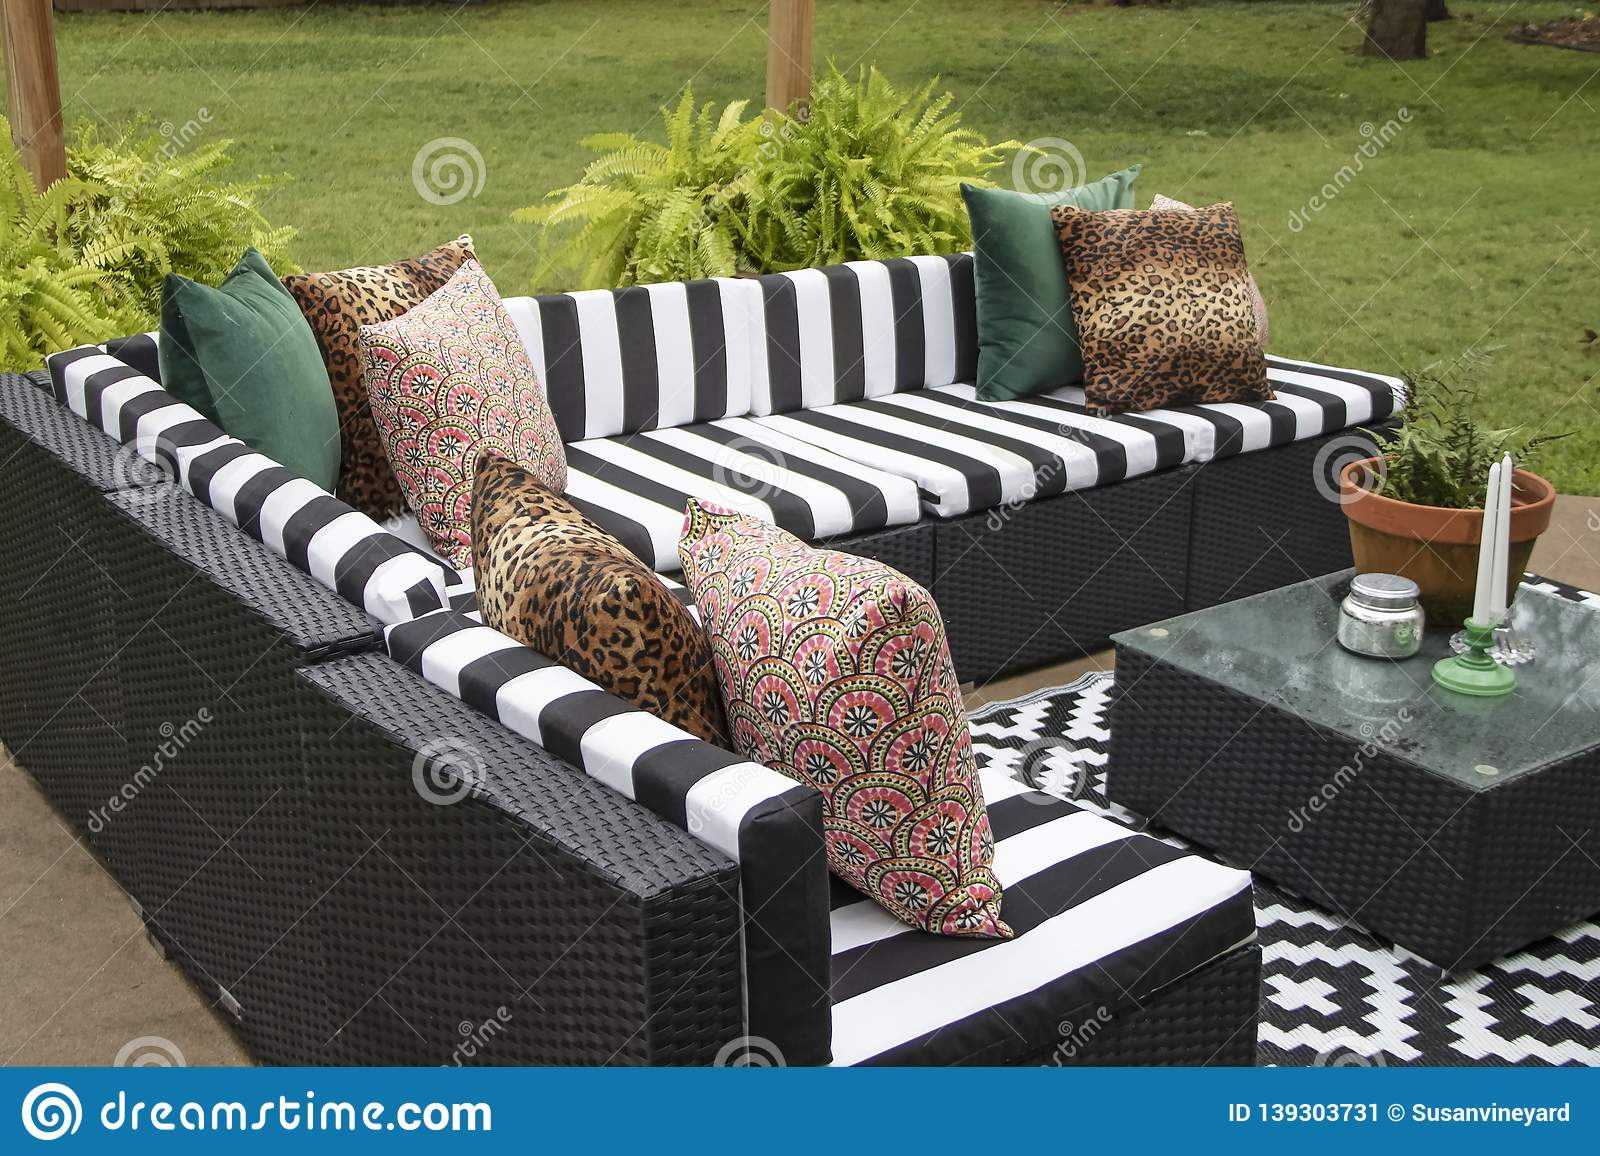 https www dreamstime com outdoor lawn furniture black white crisply striped upholstery assorted pillows grouped around table ferns image139303731